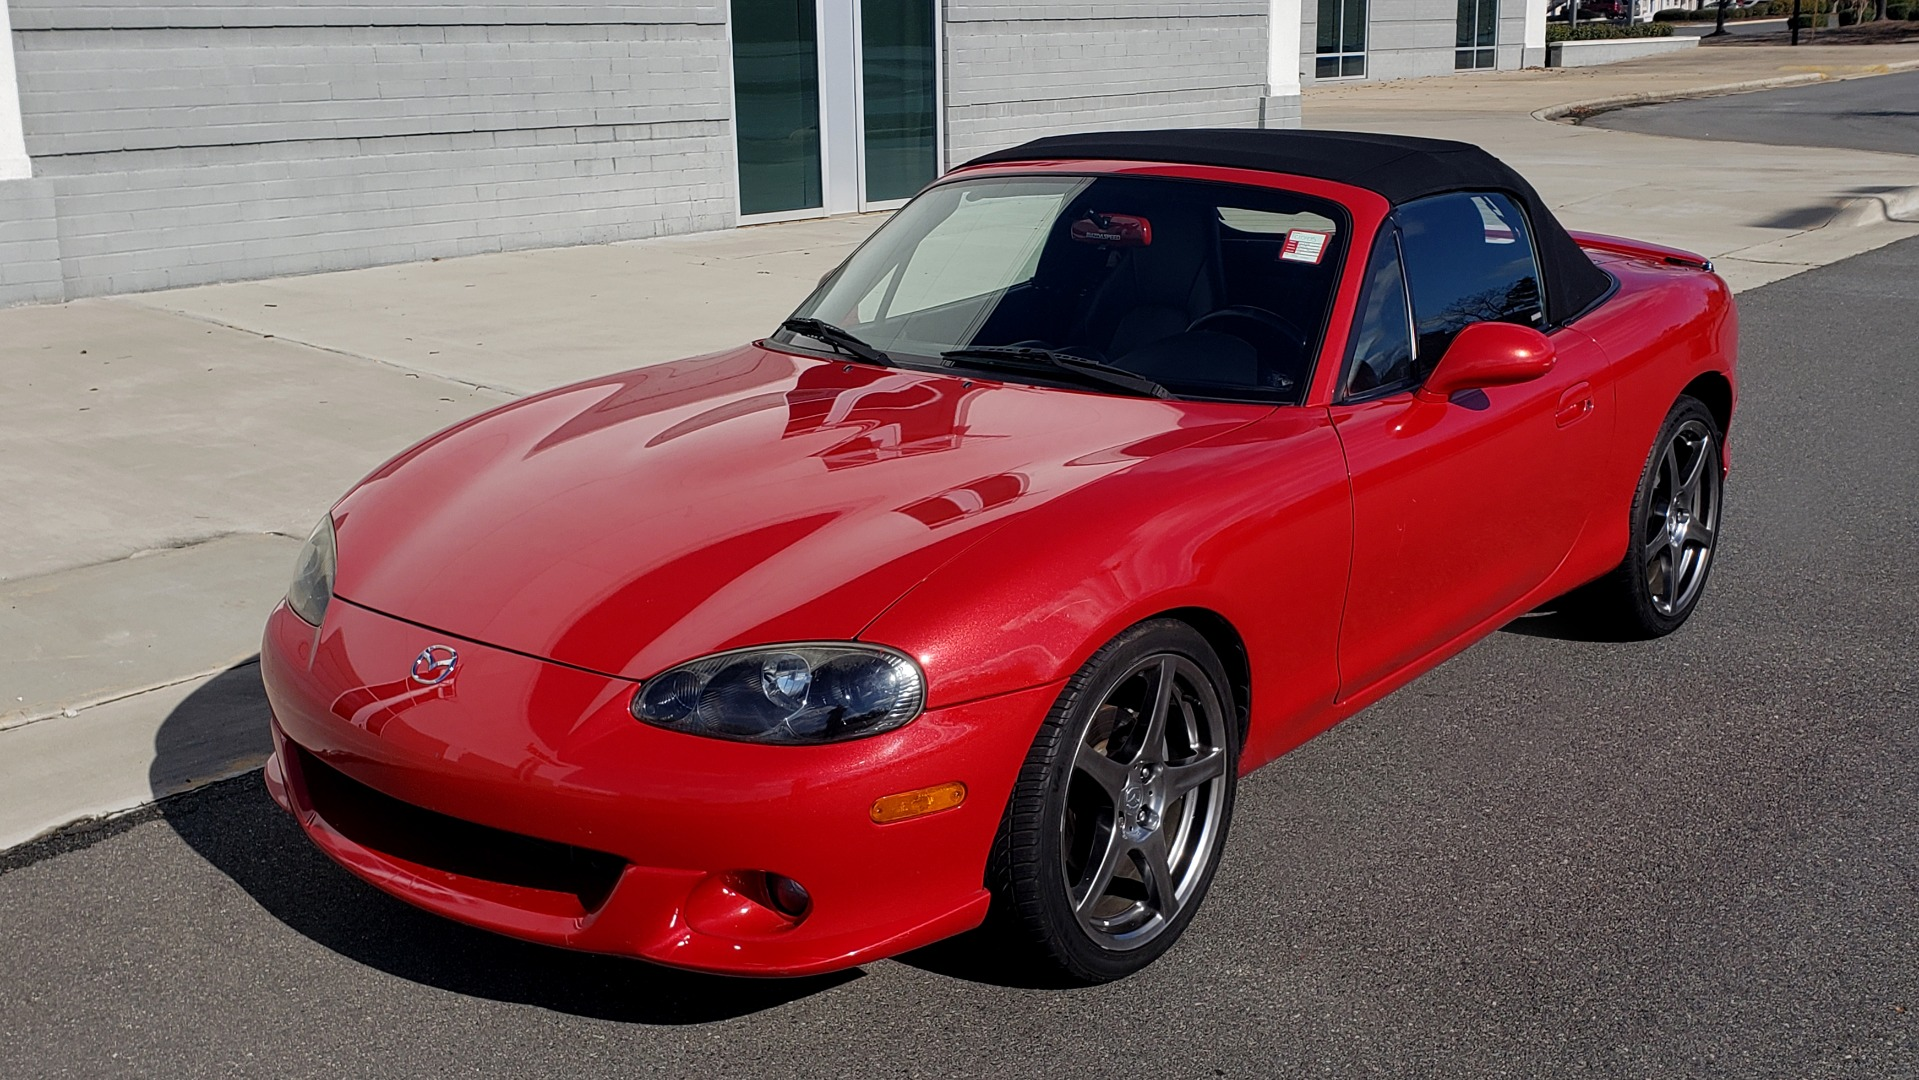 Used 2004 Mazda MX-5 MIATA 2DR CONVERTIBLE MAZDASPEED / GRAND TOURING PKG for sale Sold at Formula Imports in Charlotte NC 28227 12